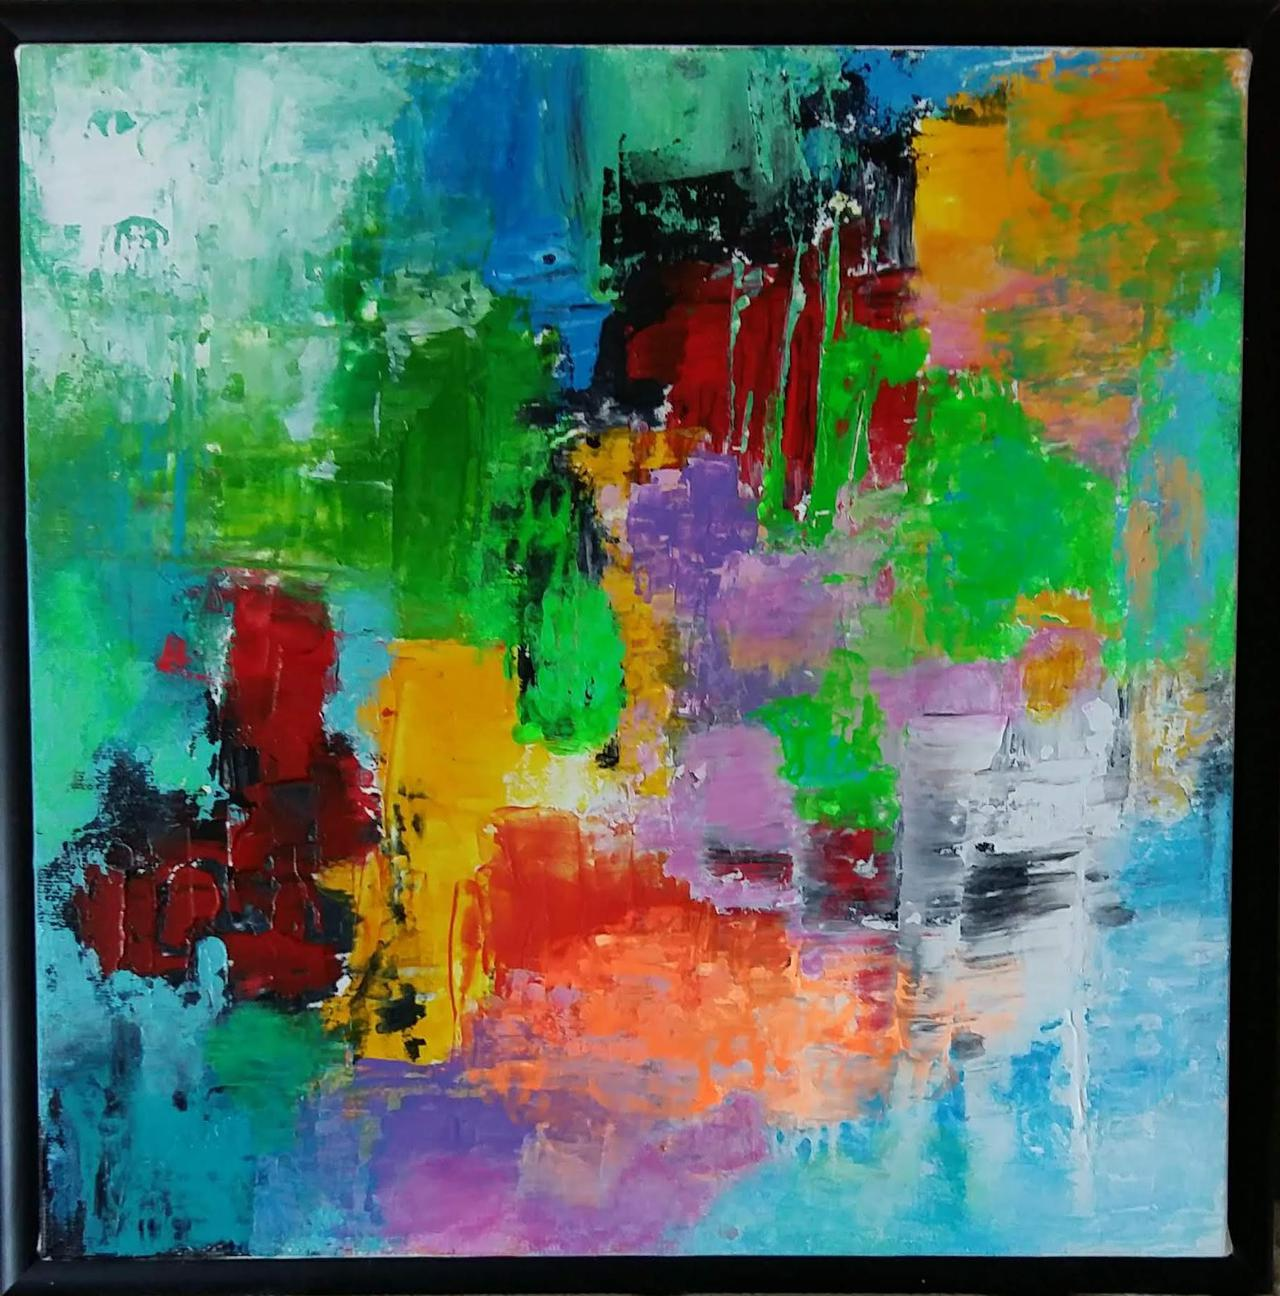 Abstract painting by a Vancouver-based artist.